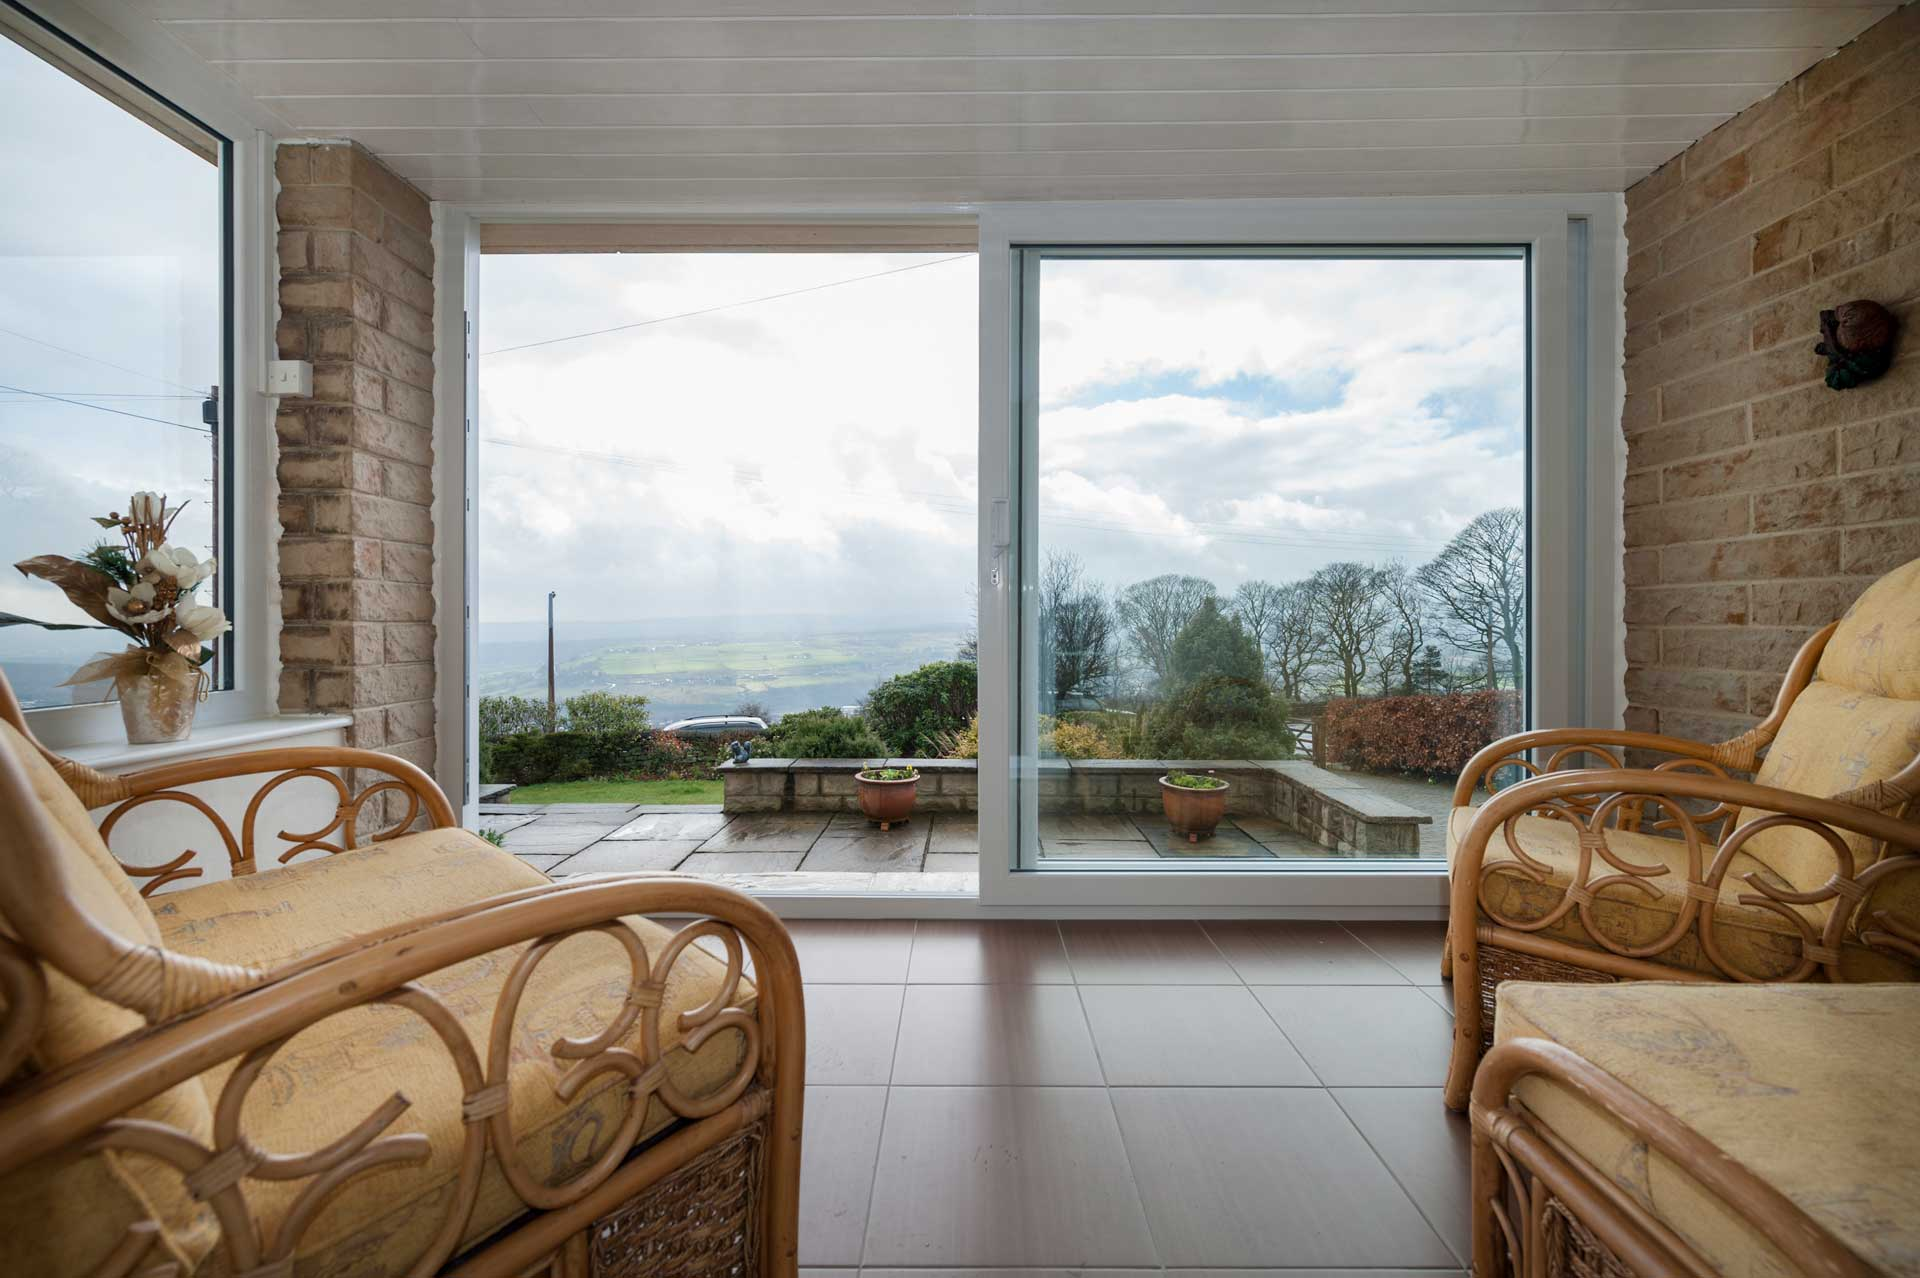 french sliding doors opening up to the country side